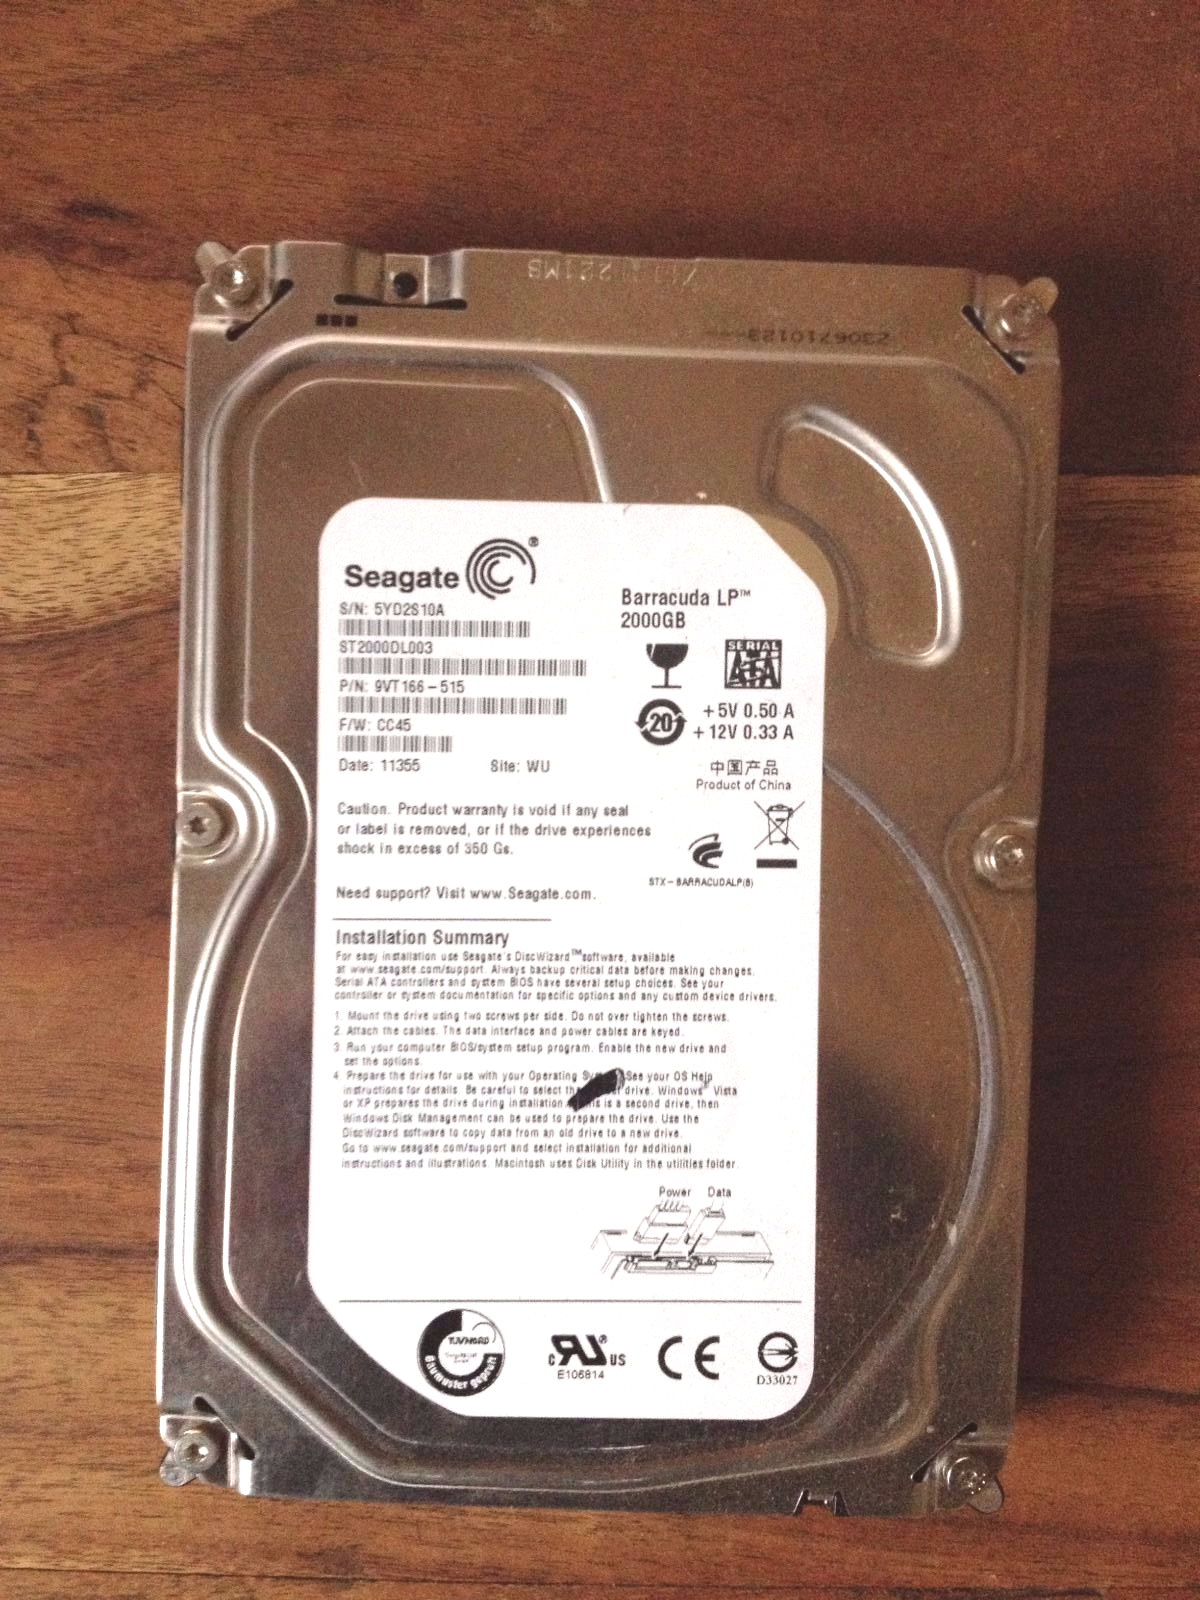 Disque dur interne Seagate Barracuda reformaté, comme neuf,  2 TO, pour CHF 69.-- !